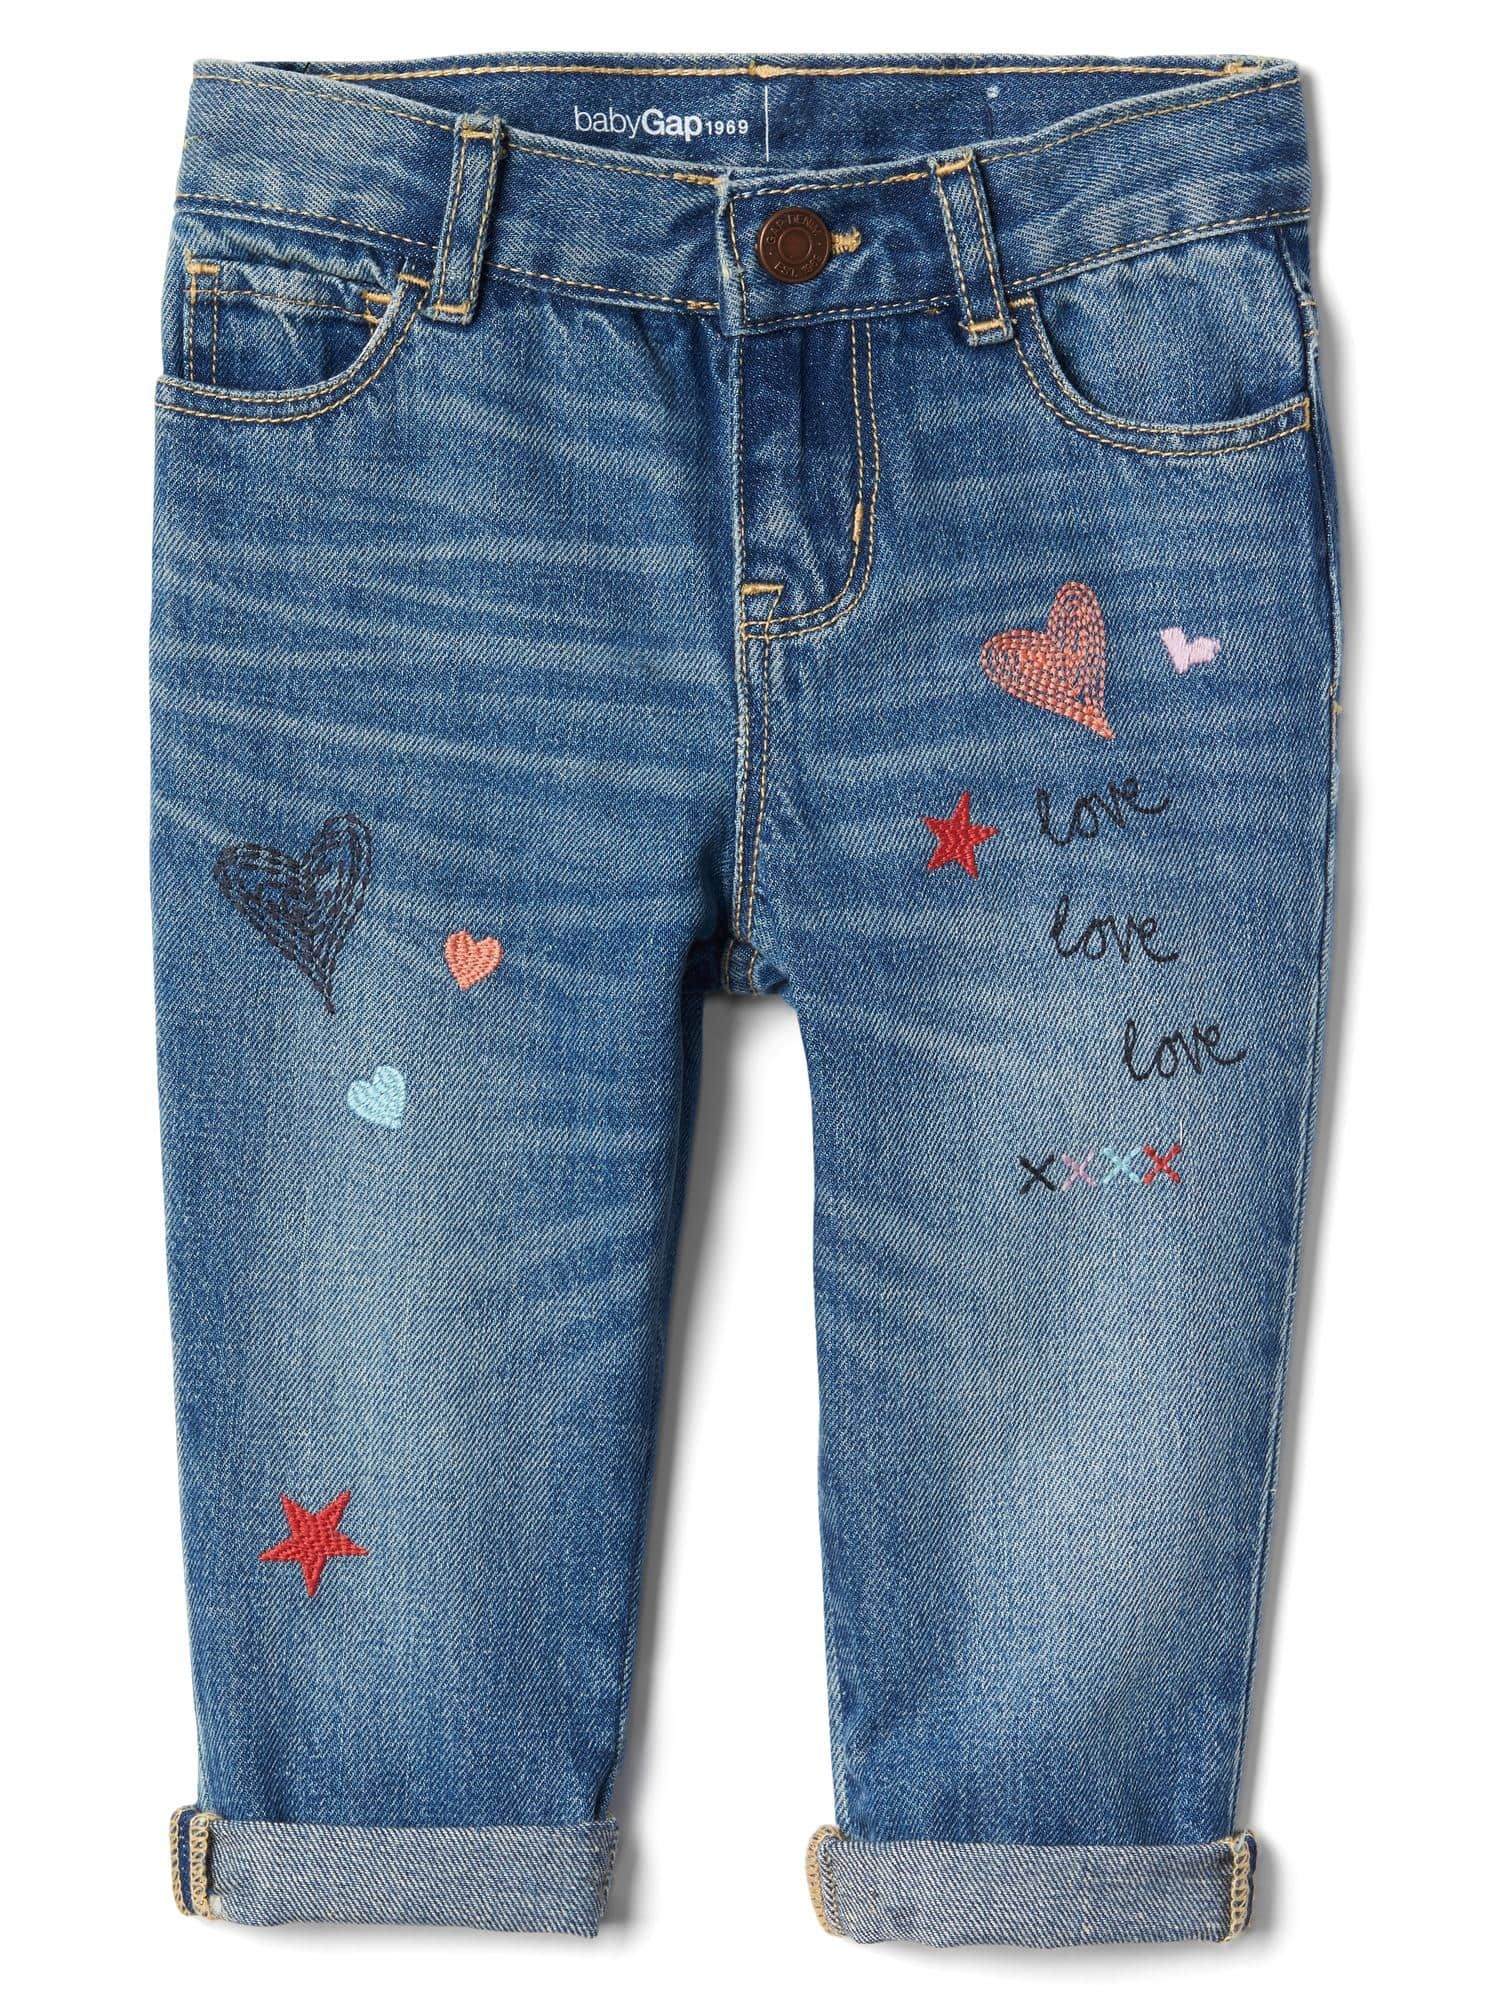 8b9abcc2fa765 Cute babygirl jeans | Baby/Kids Girls Clothing, Outfits Sets, Socks ...